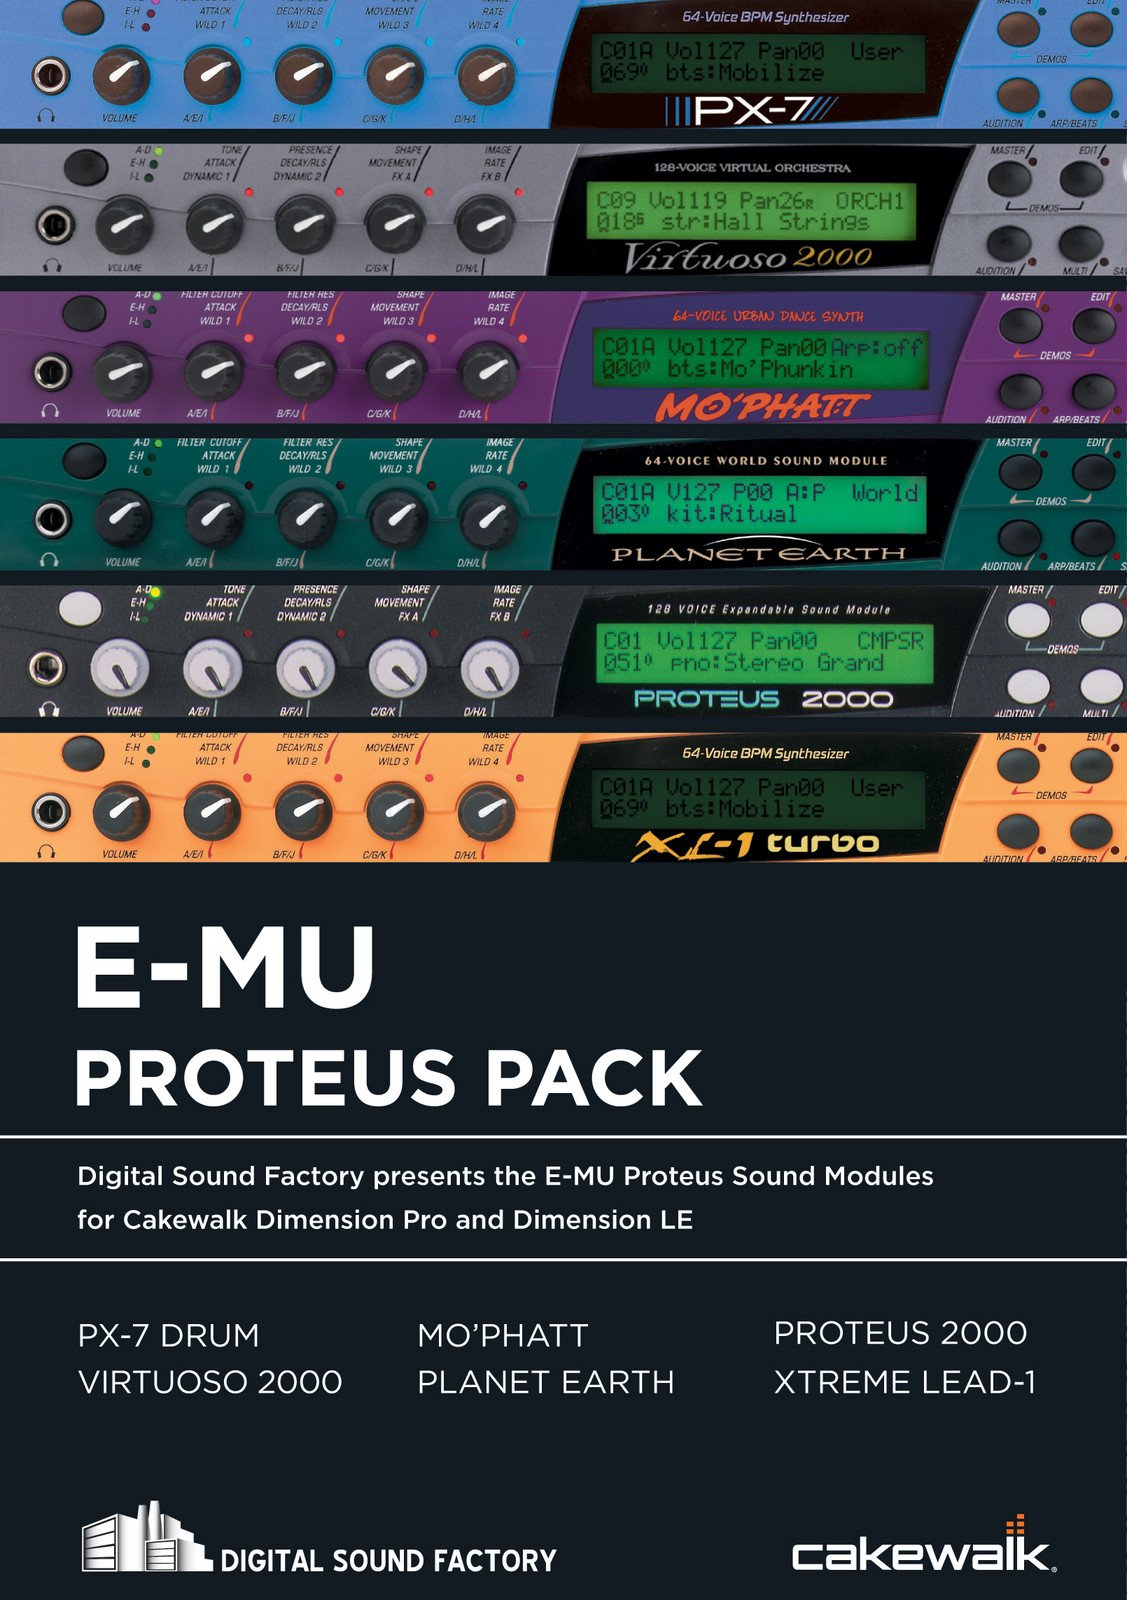 Cakewalk Proteus Pack For Dimension Complete Collection Sweetwater The Electronics Design System Image 1